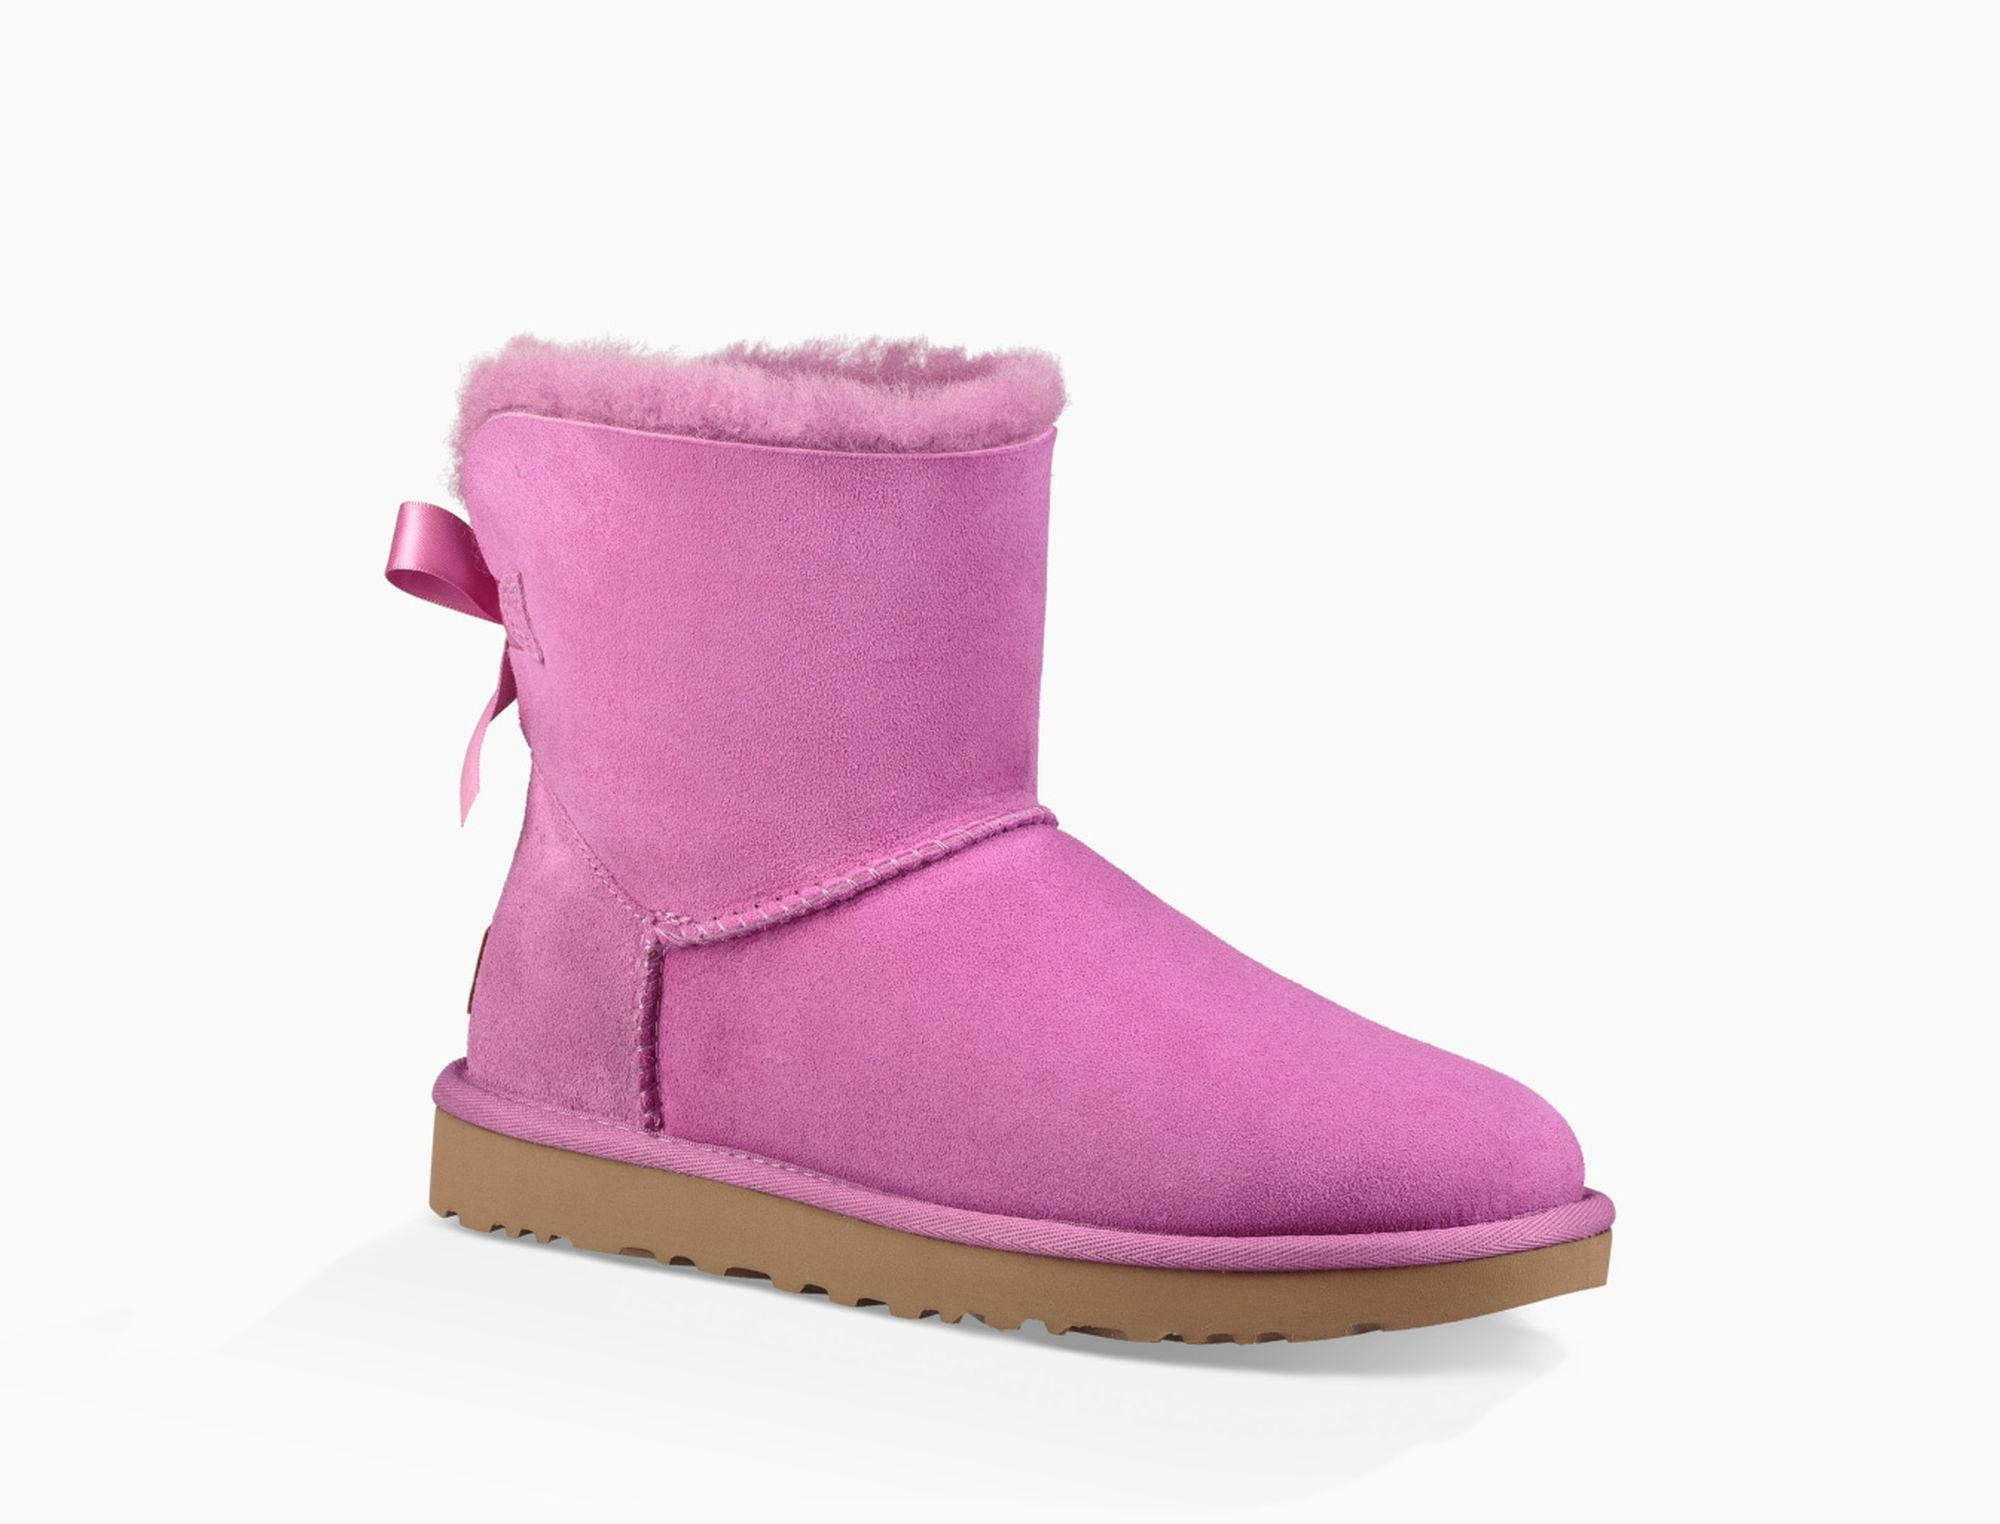 d0a3aa15aa5 Ugg Purple Women's Mini Bailey Bow Ii Boot